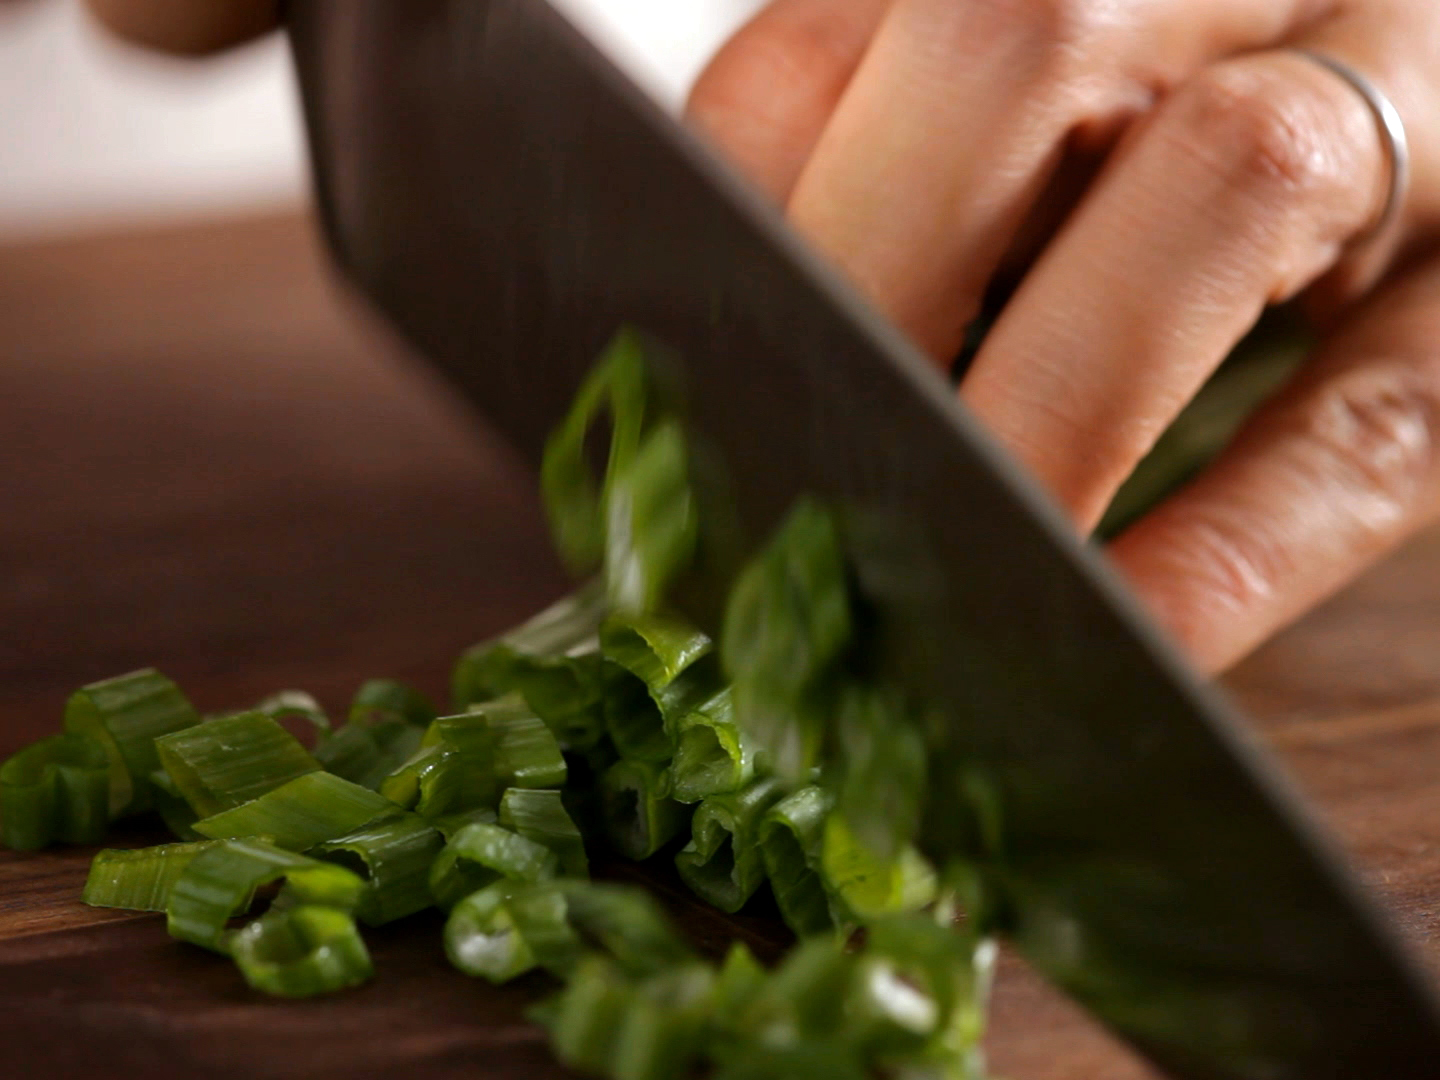 Knife Skills: Simple Ways to Make Prep Work Fast and Easy